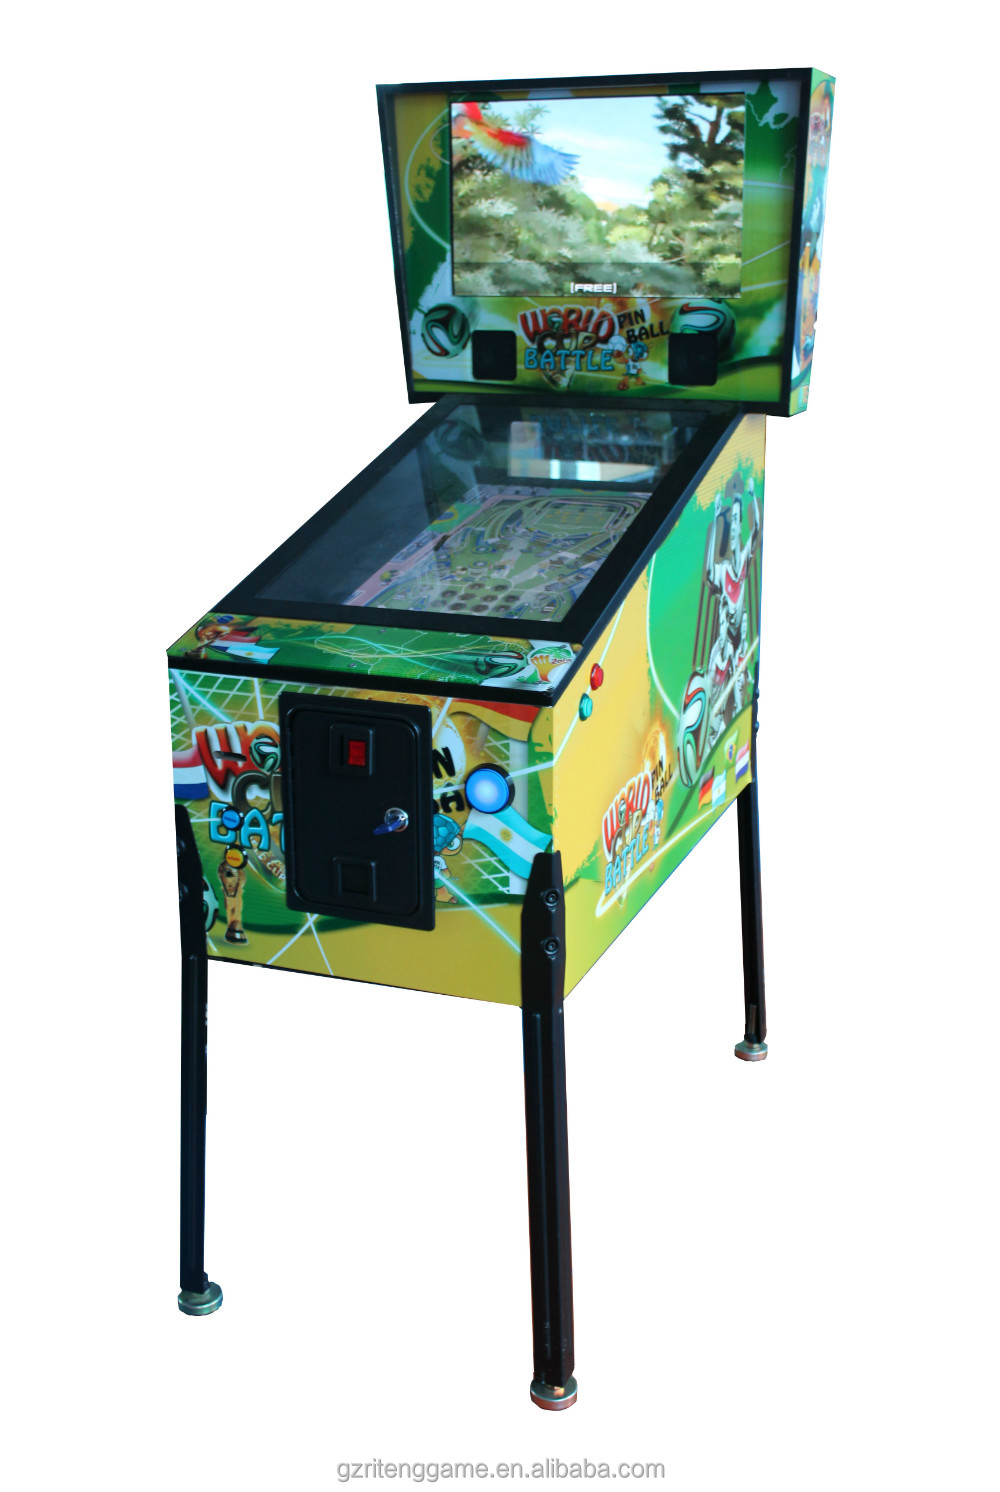 Hot sale video world cup battel pinball arcade games machines